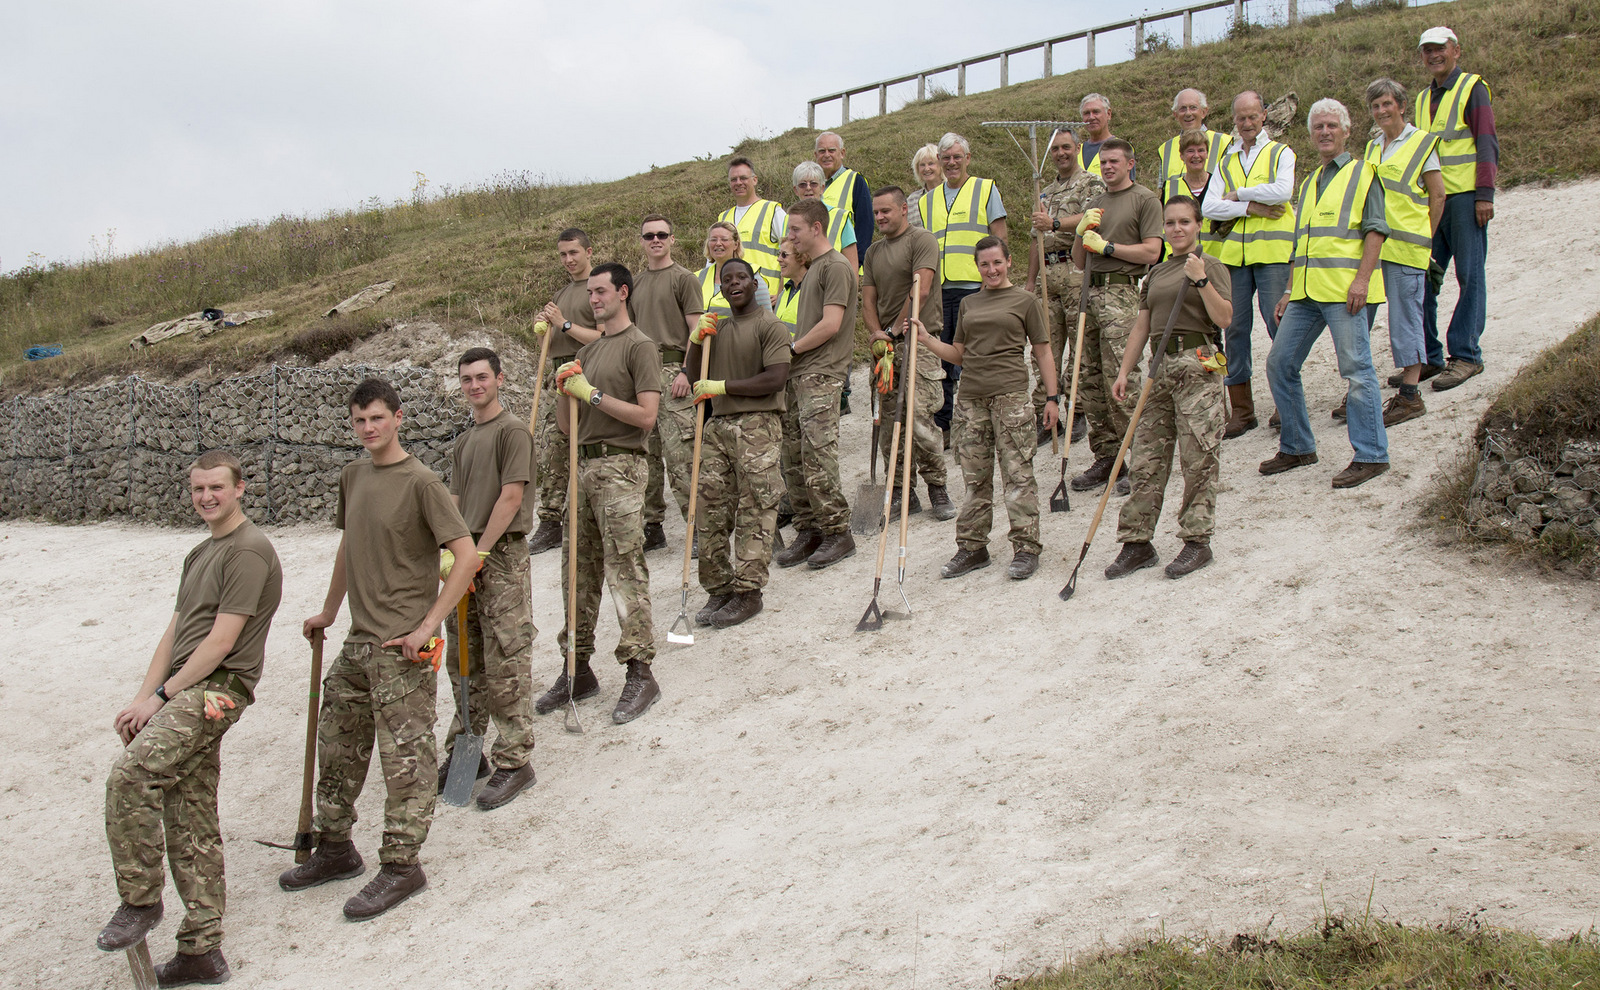 RAF and civilian volunteers after working together to clean Whiteleaf Cross in the Chilterns